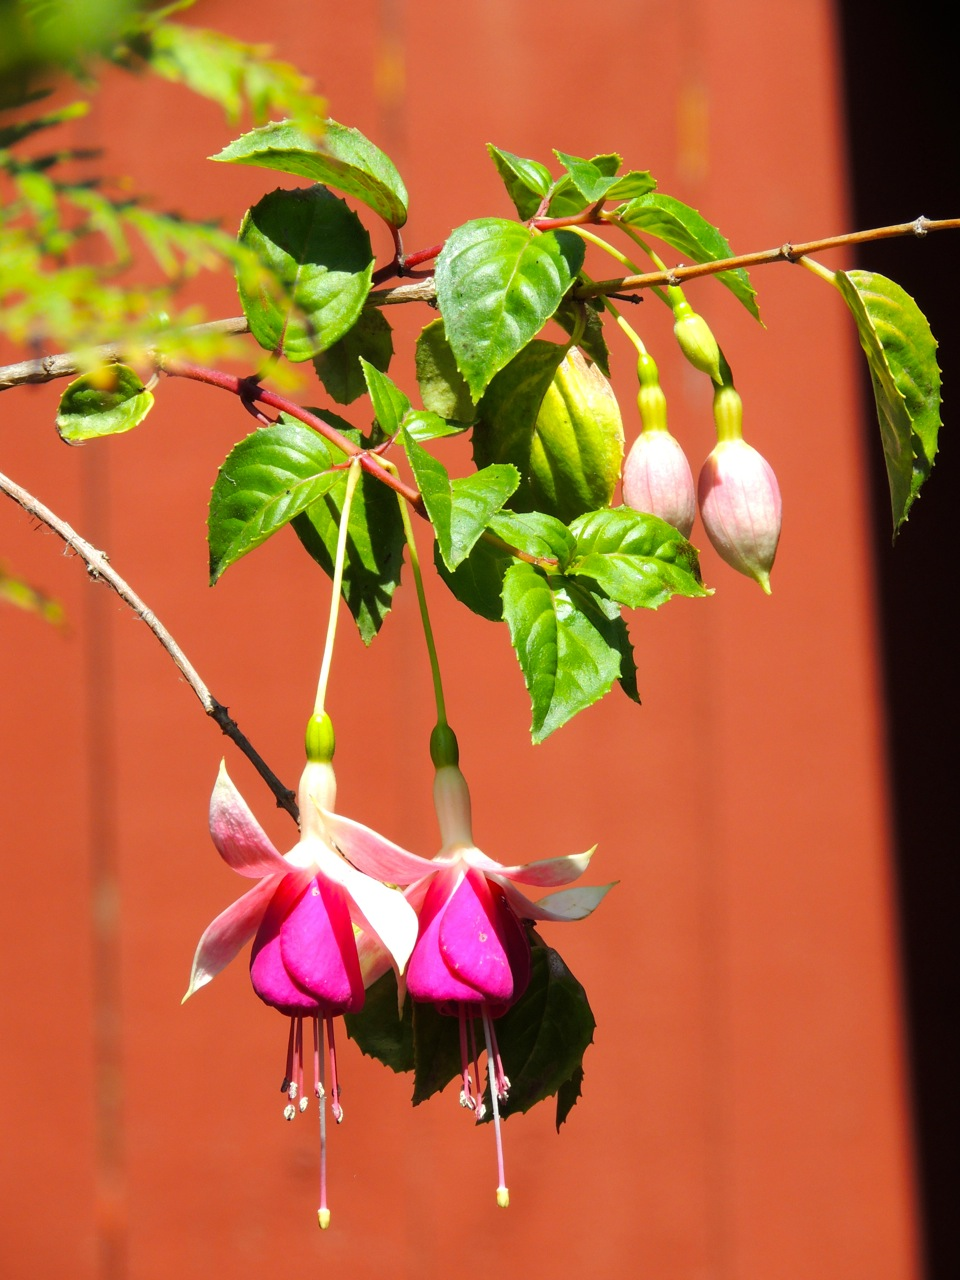 I haven't been watering the fuchsia, though. It's like a tree now, with very deep roots.